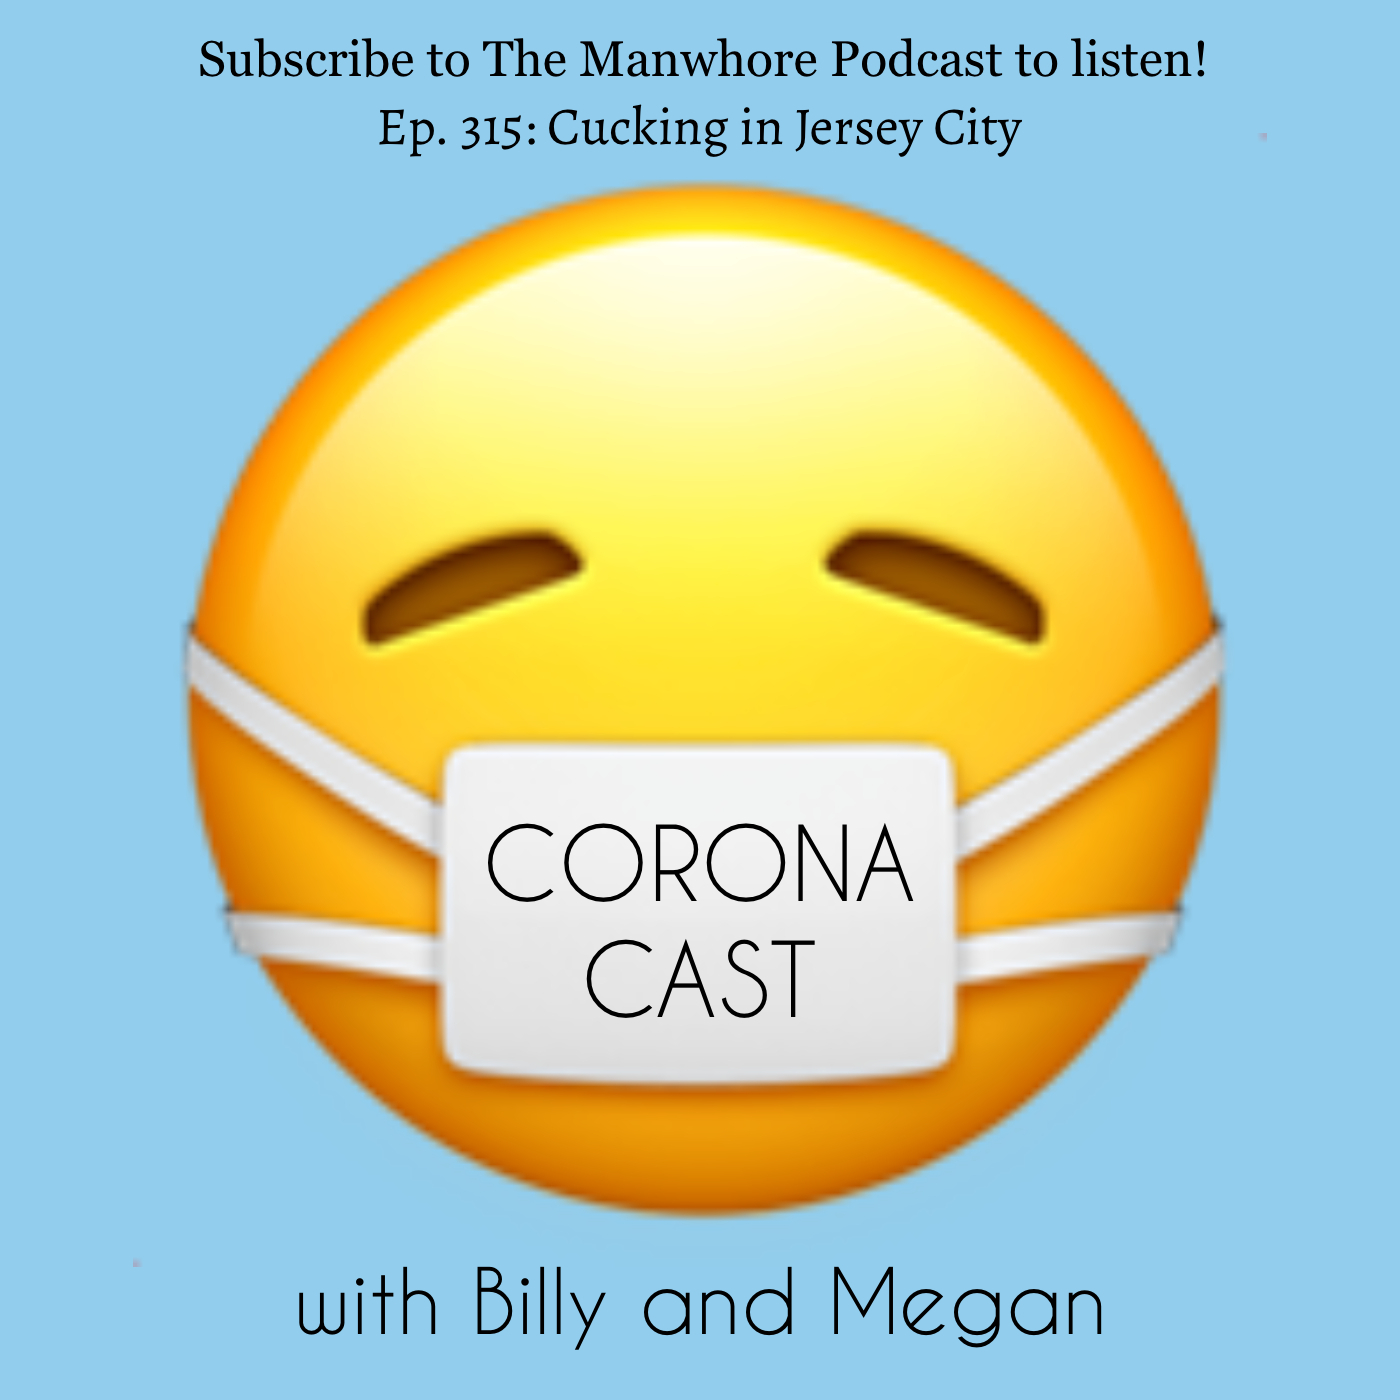 The Manwhore Podcast: A Sex-Positive Quest - Ep. 315: Corona Cast Part 3 - Cucking in Jersey City